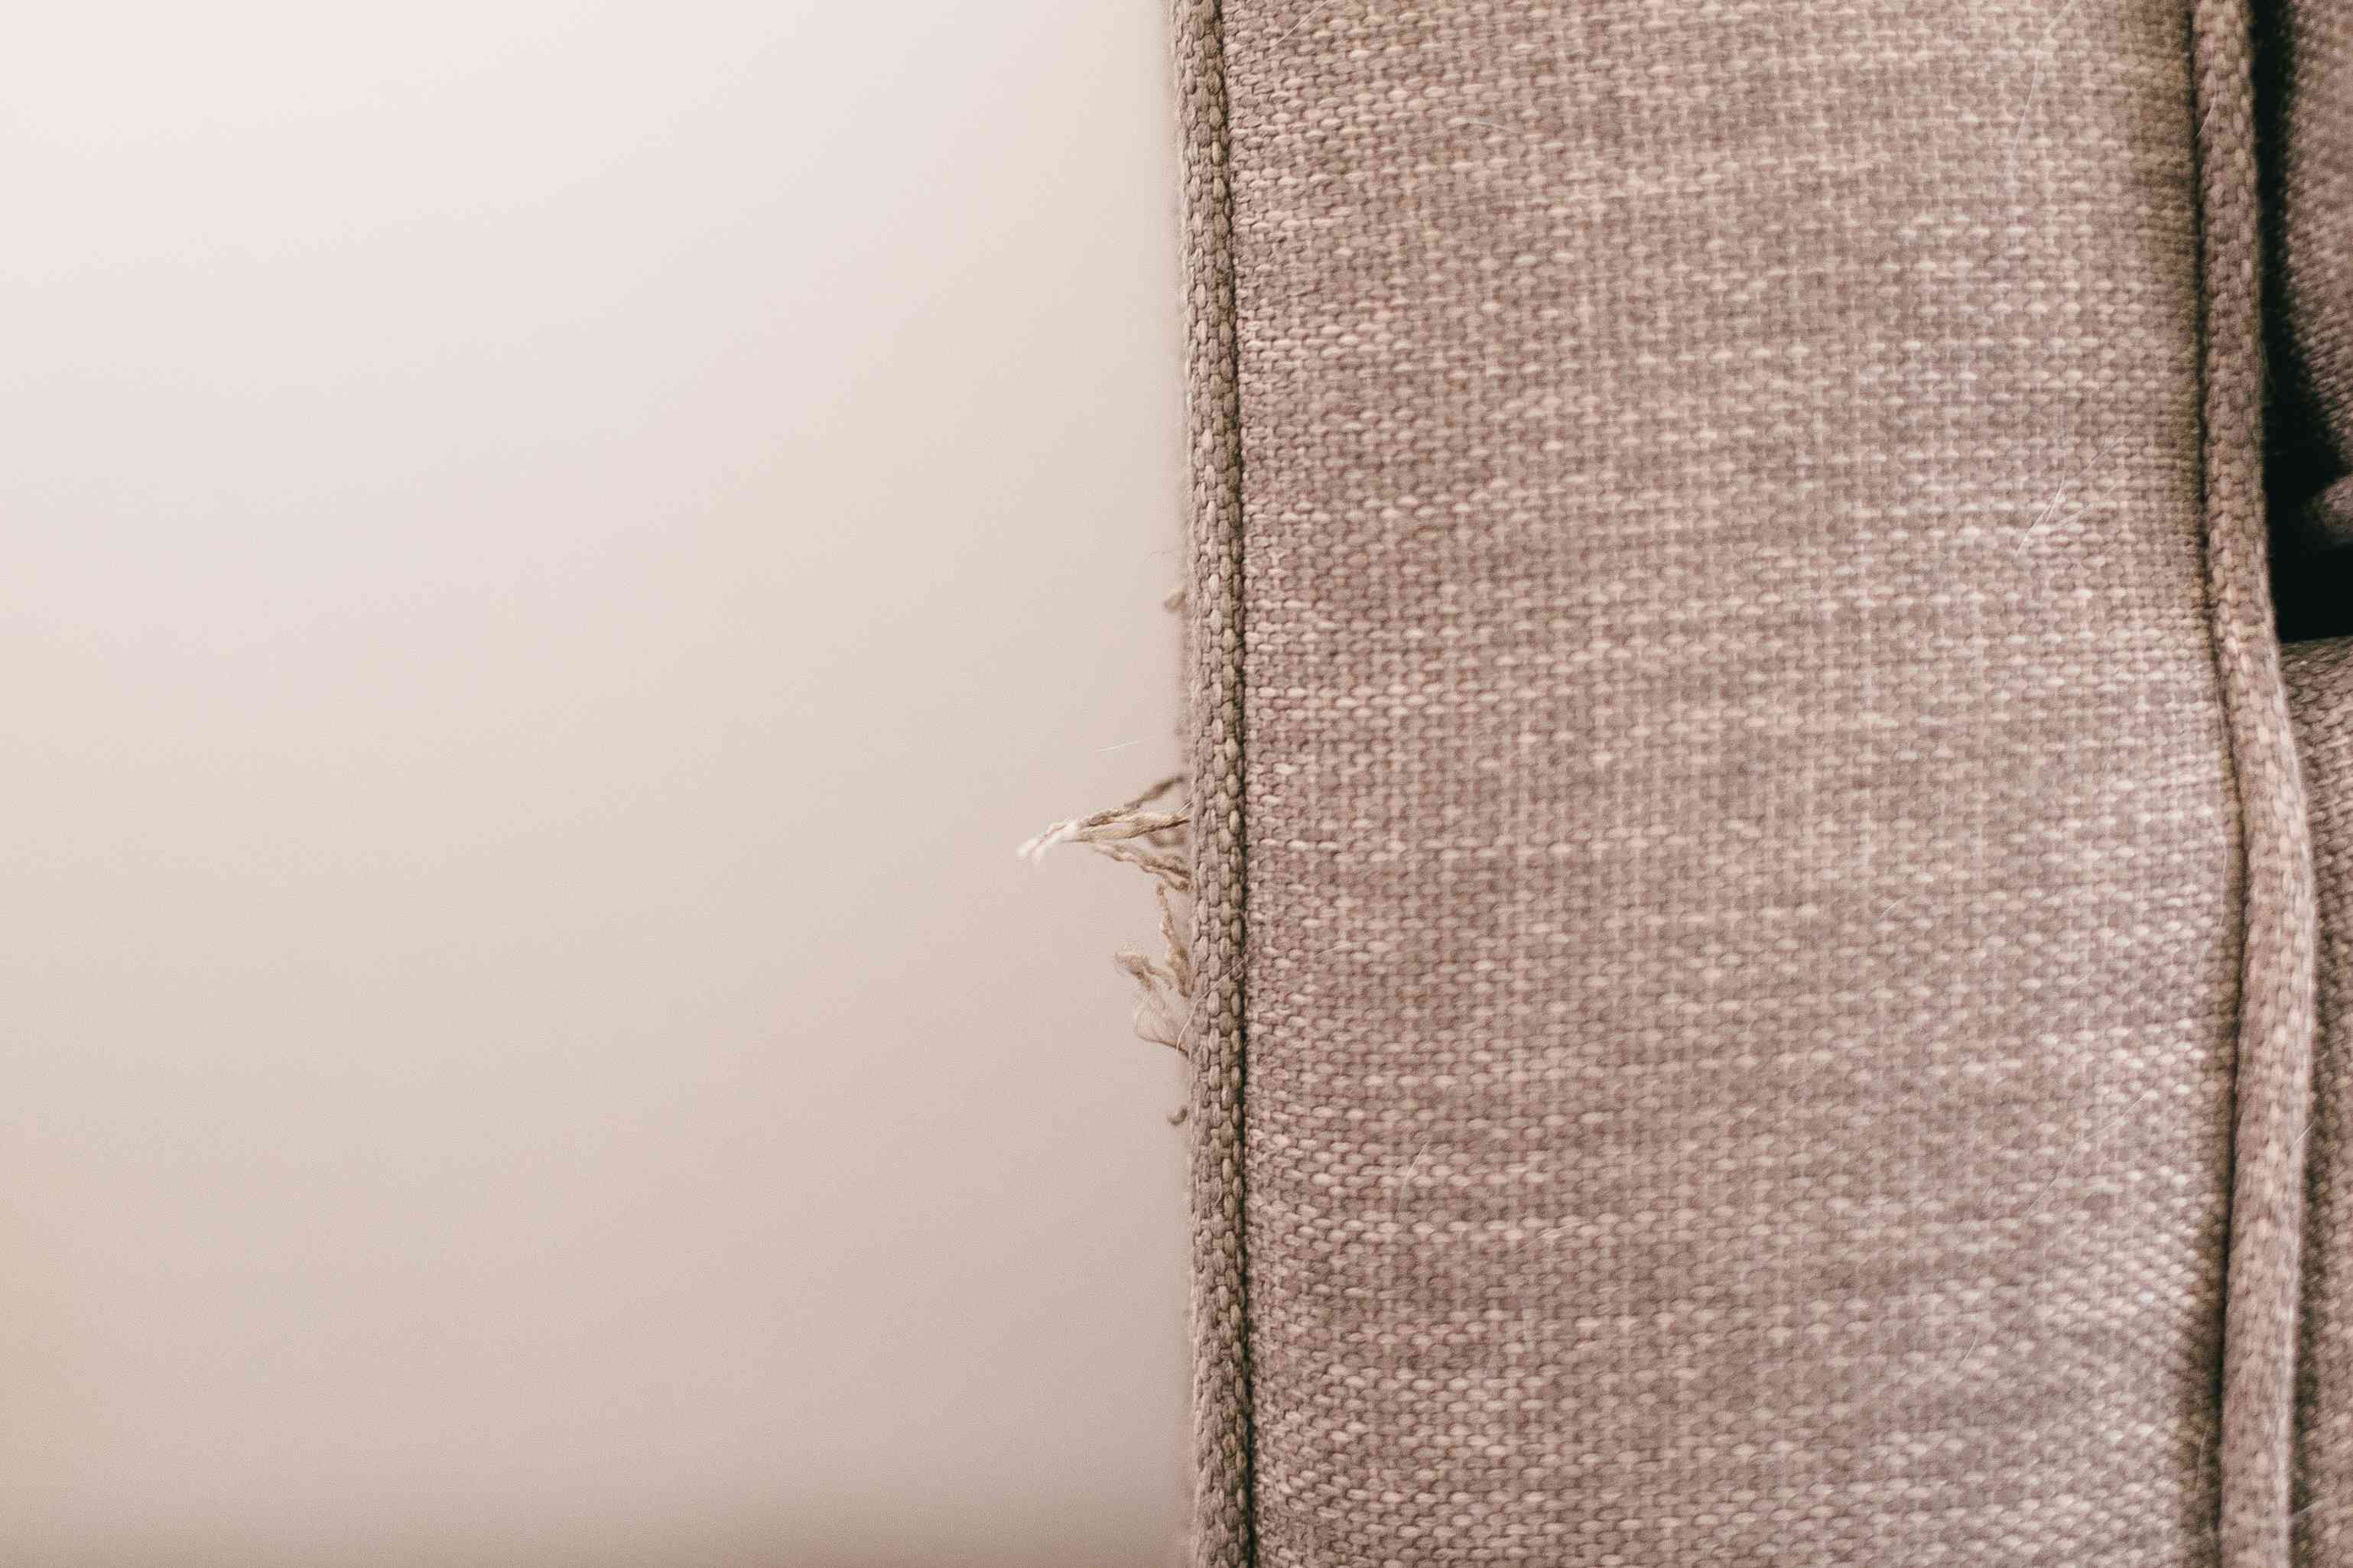 Tan couch upholstery with frayed ends closeup